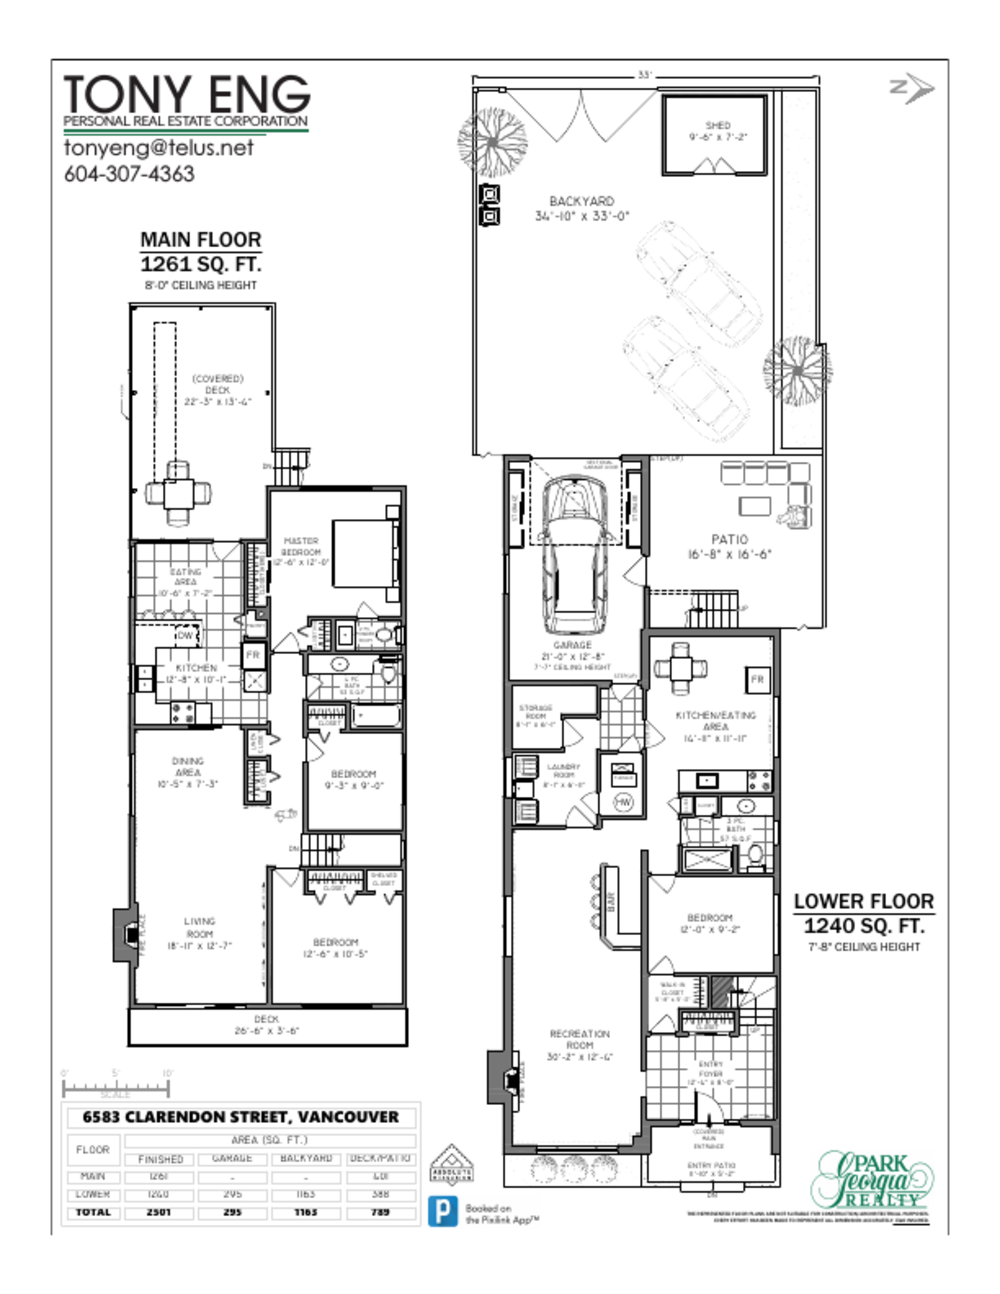 Floor Plan for a 4 Bedroom House in Vancouver